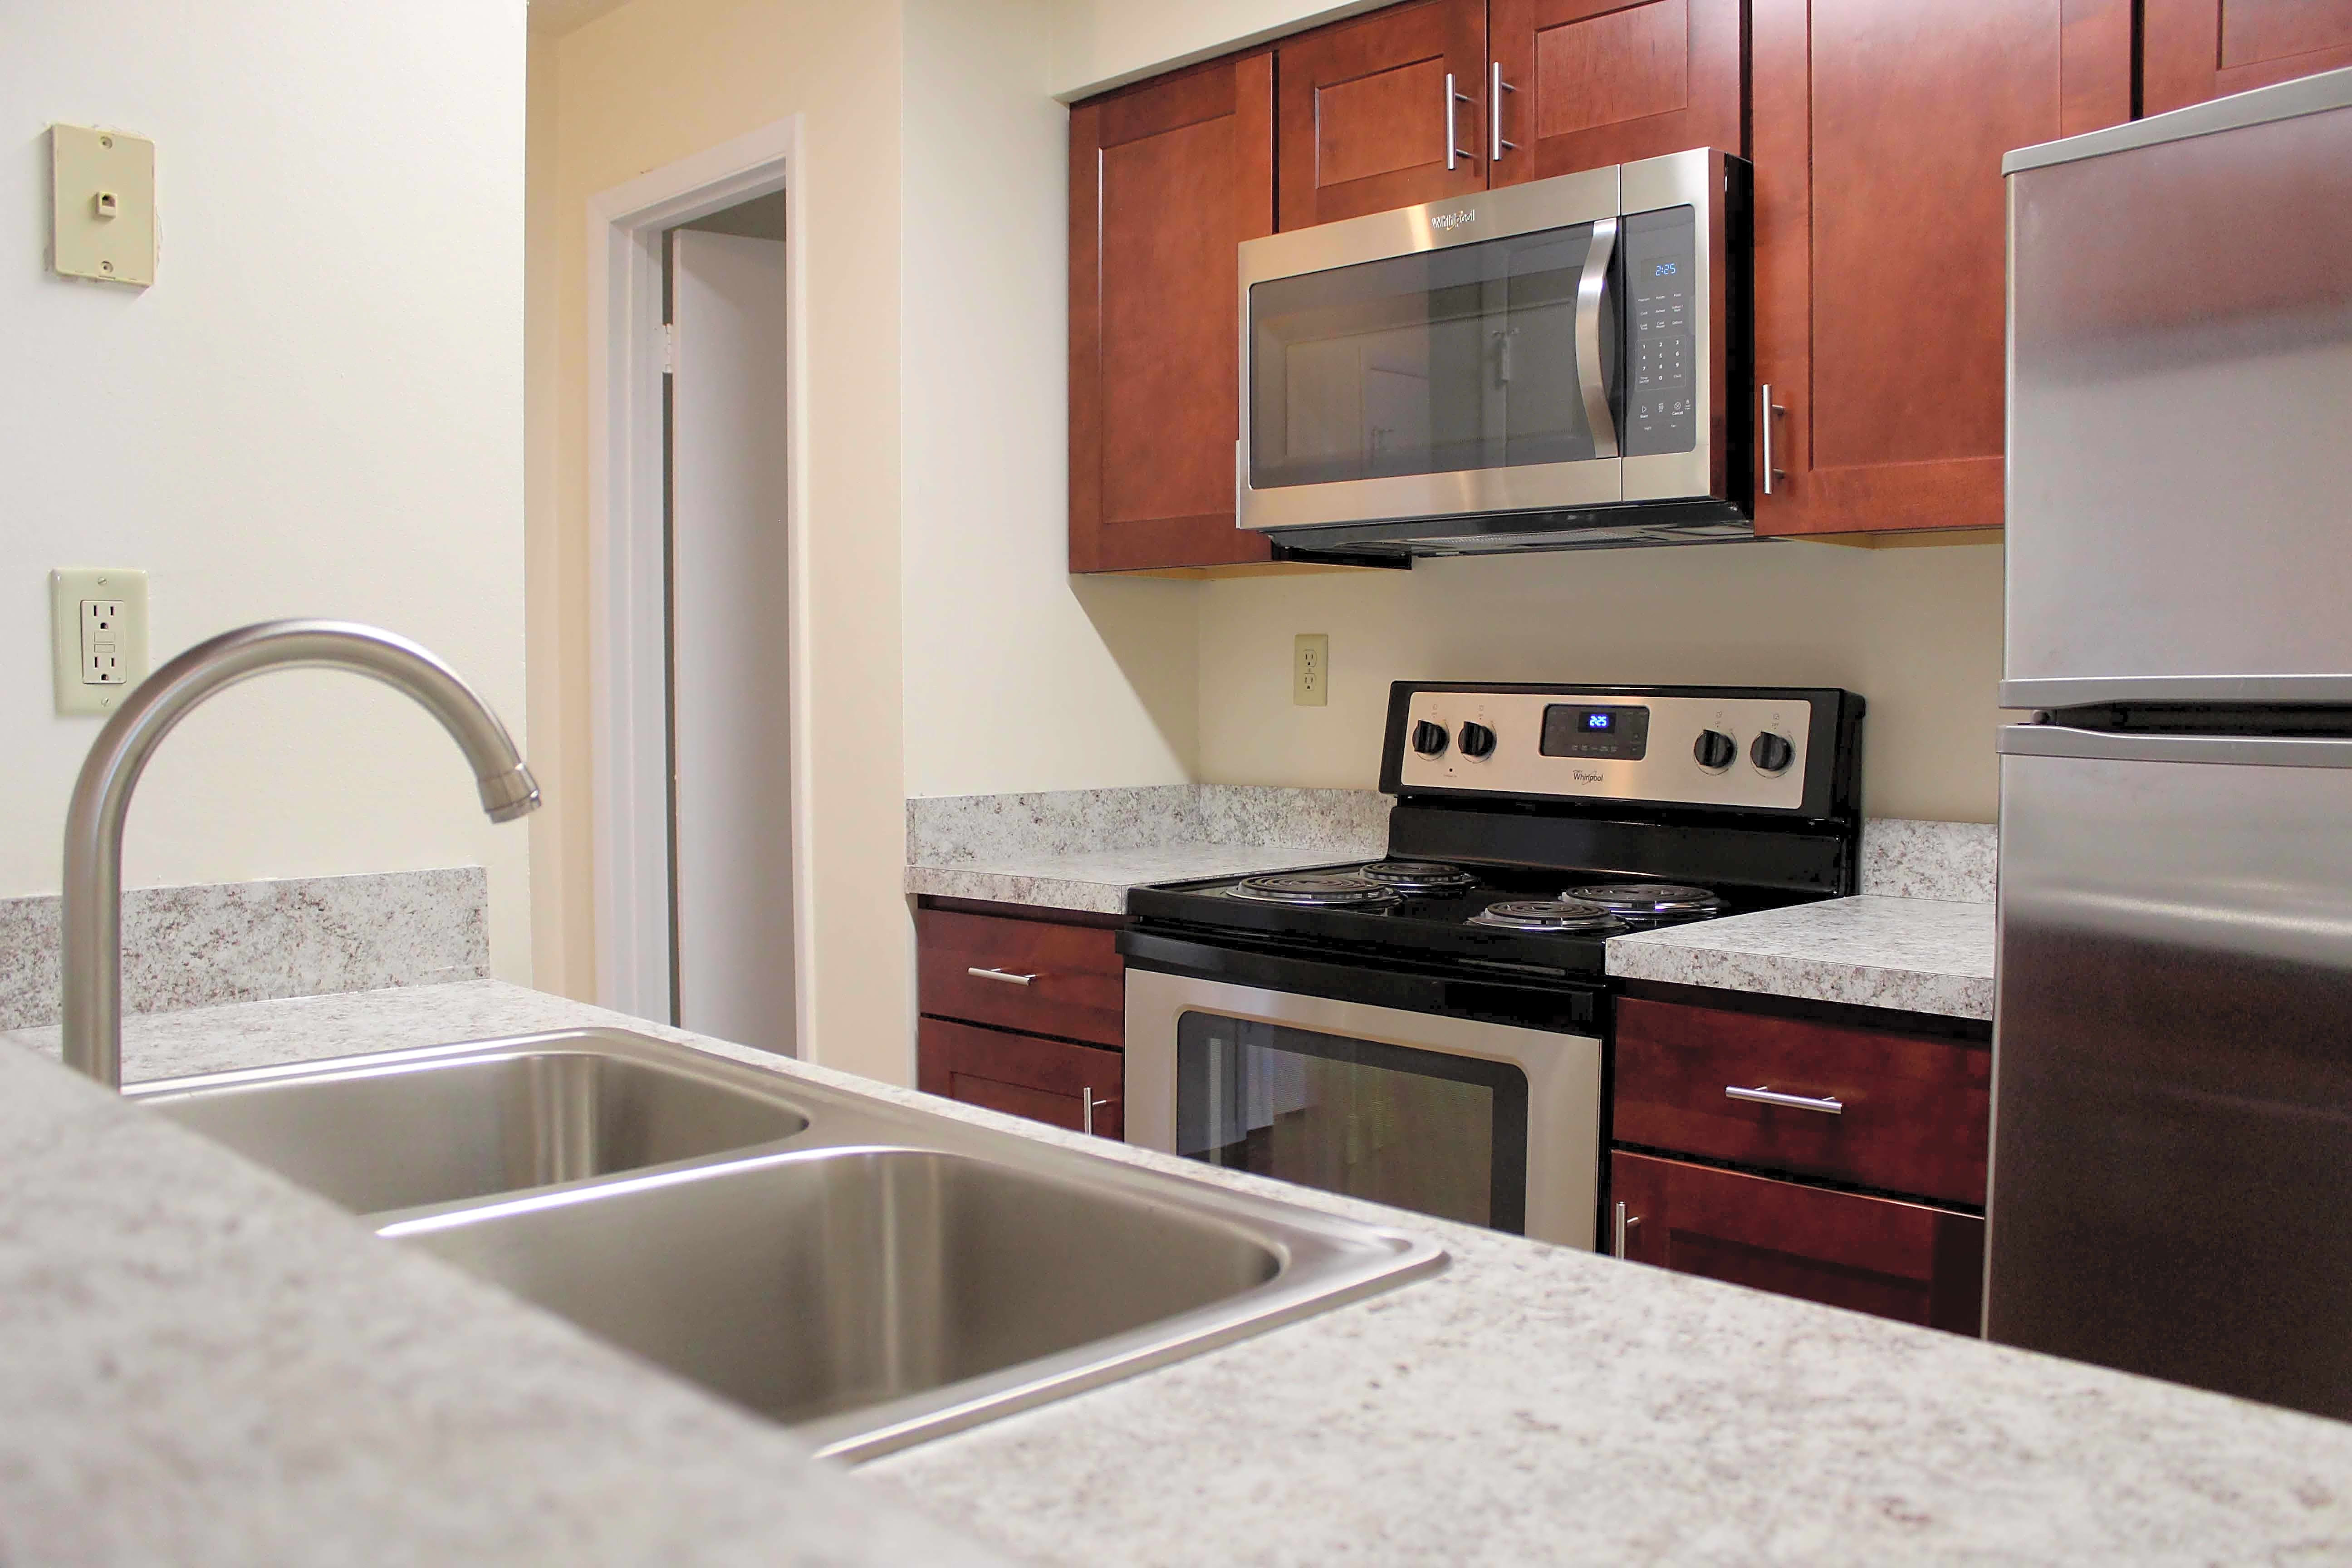 Newly renovated two bedroom kitchen